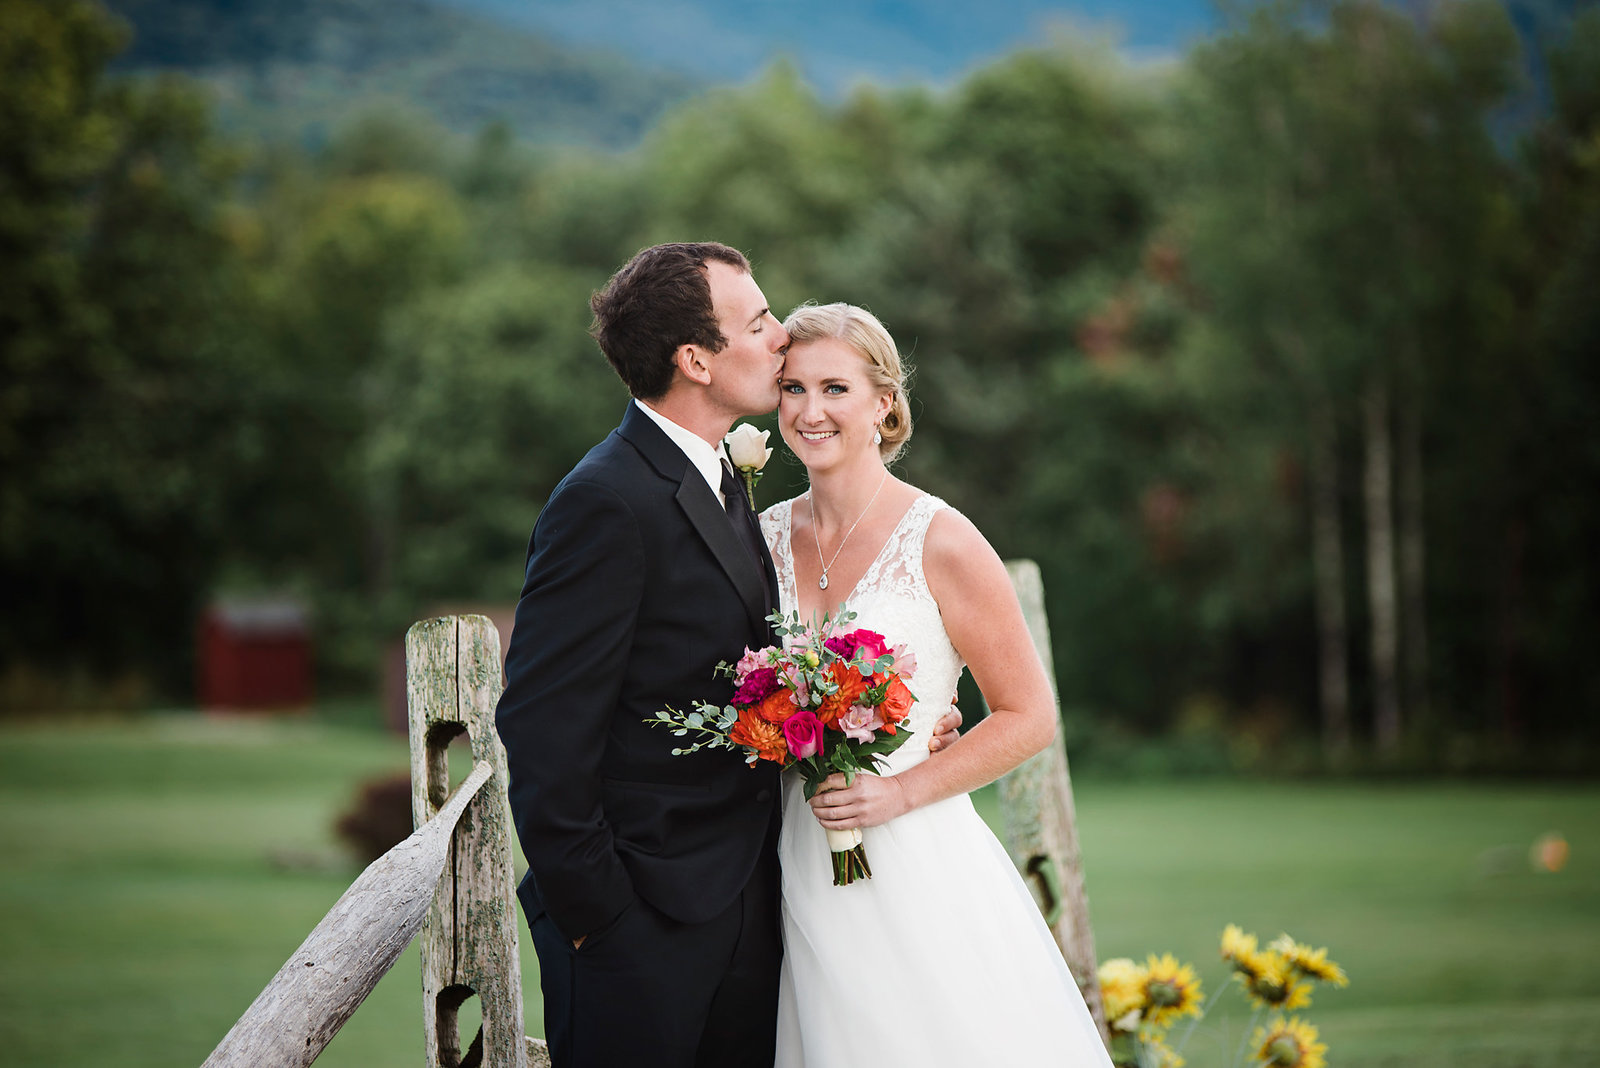 Mountain Top Inn wedding, fall wedding in Vermont, vibrant color palette fall wedding, Vermont wedding photographer